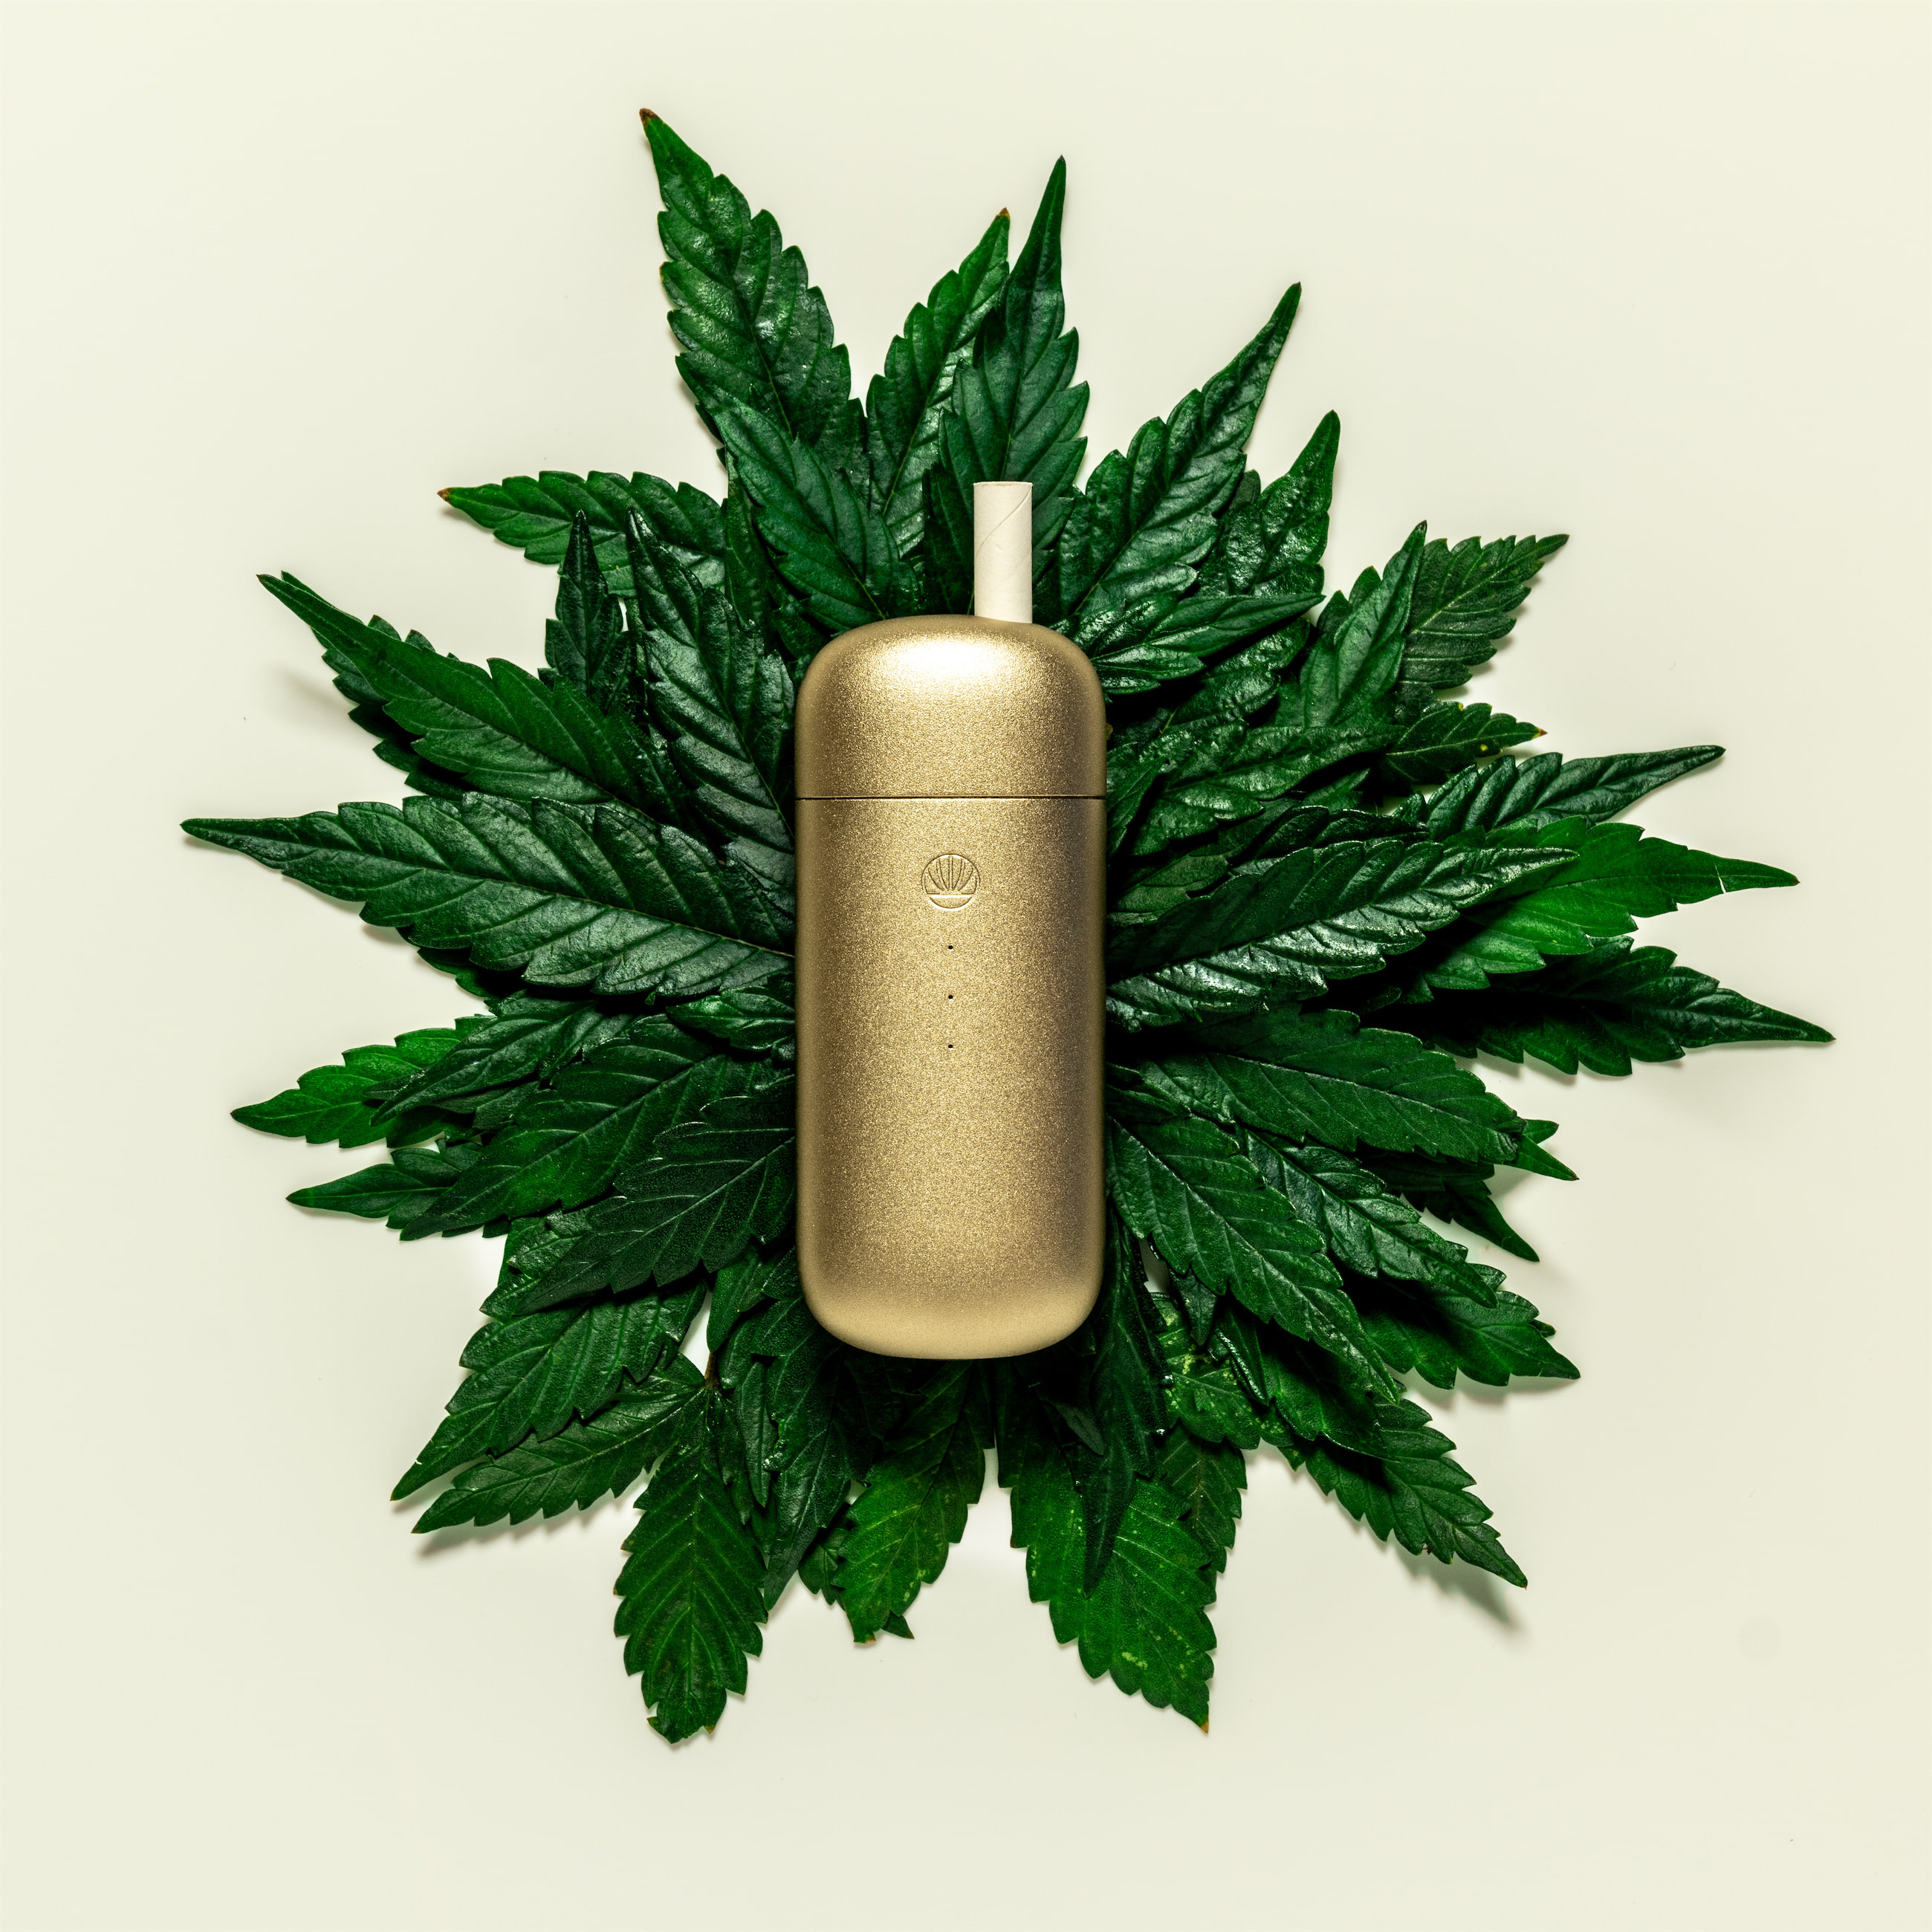 Omura Series X Gold on Cannabis leaves